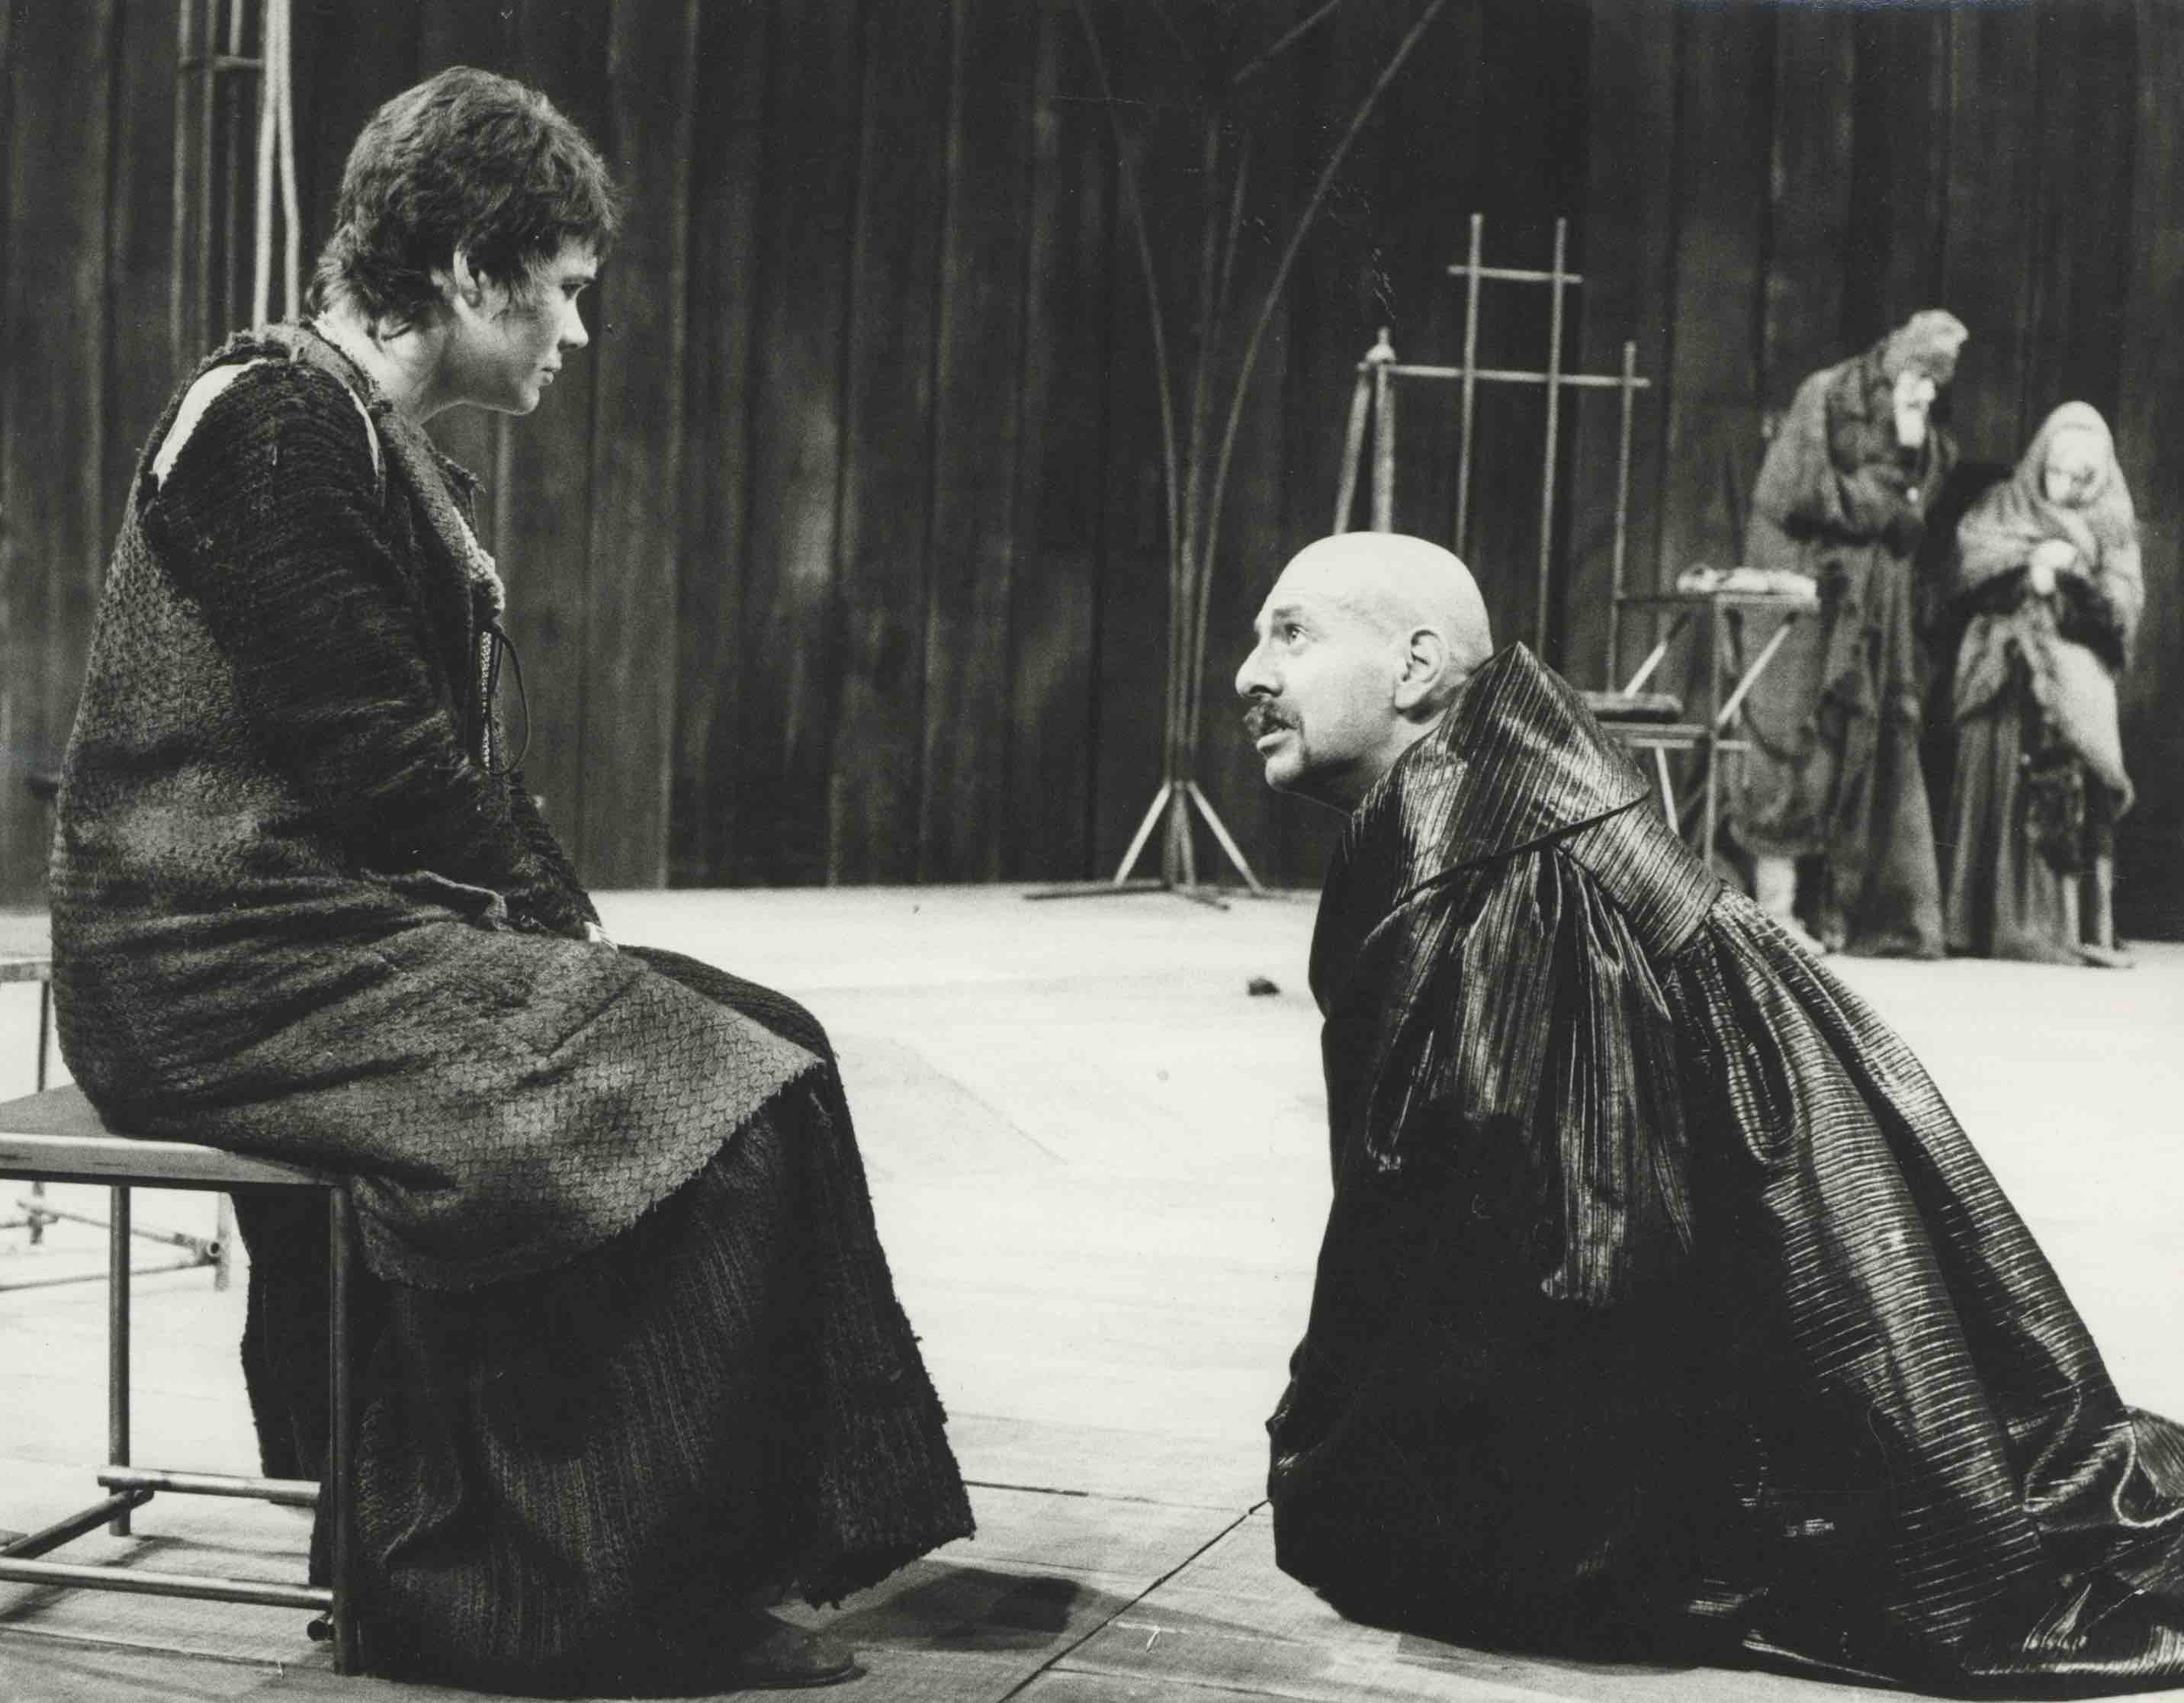 Production photograph - The Caucasian Chalk Circle - Heather Sears, Topol -Photographer John Timbers - 1969 - WSRO - Dimensions unknown